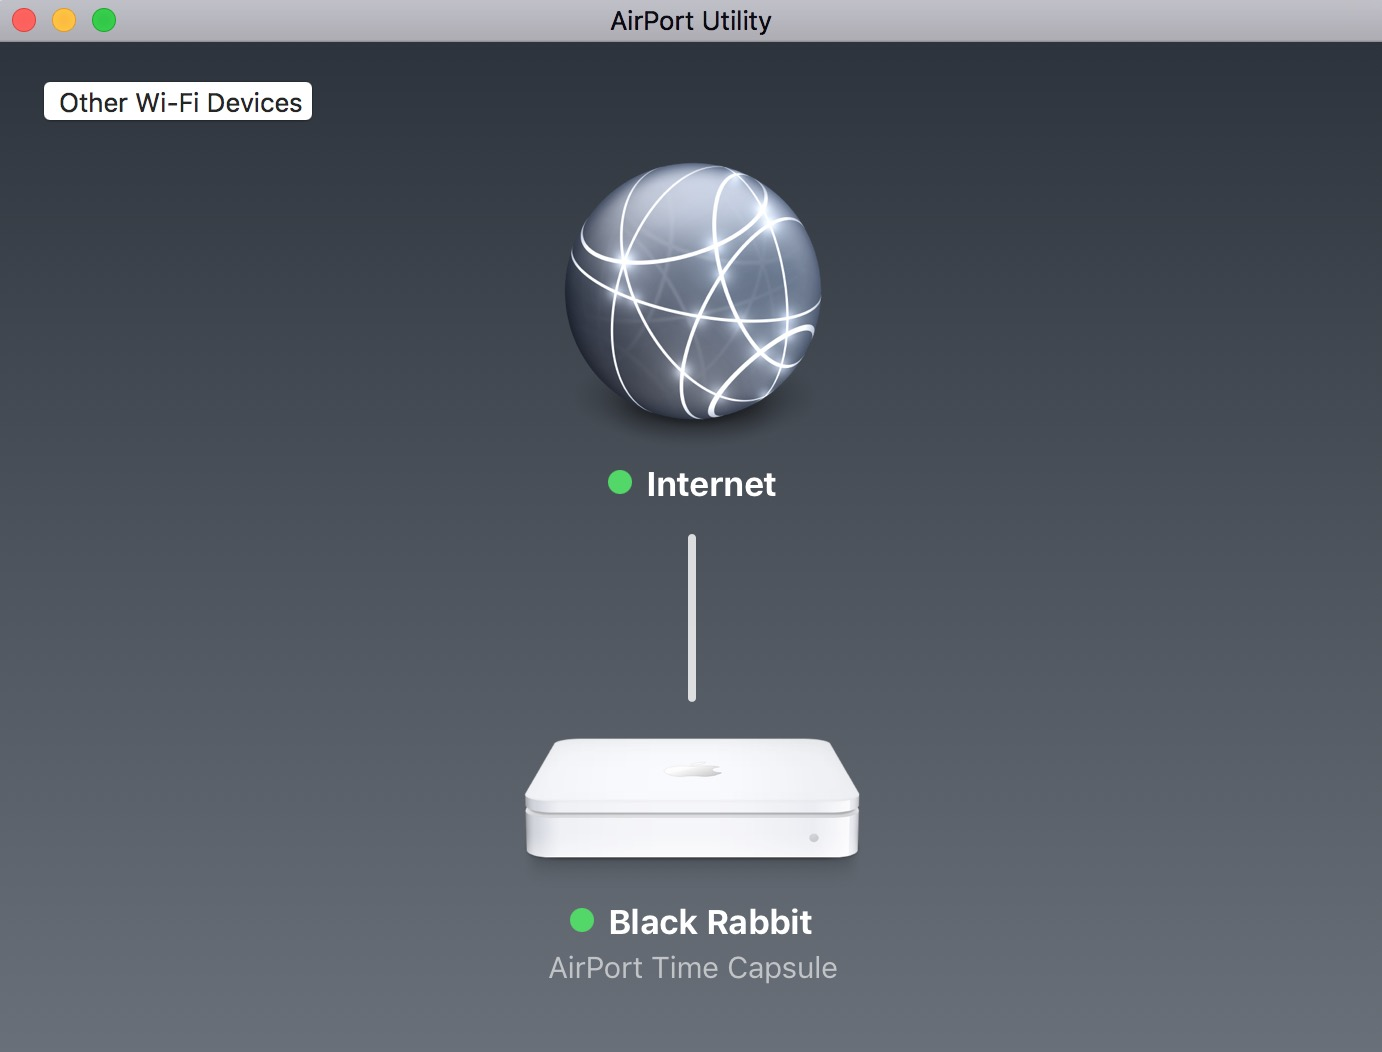 Use the AirPort Utility app on your Mac to see your AirPort Basestation and its settings